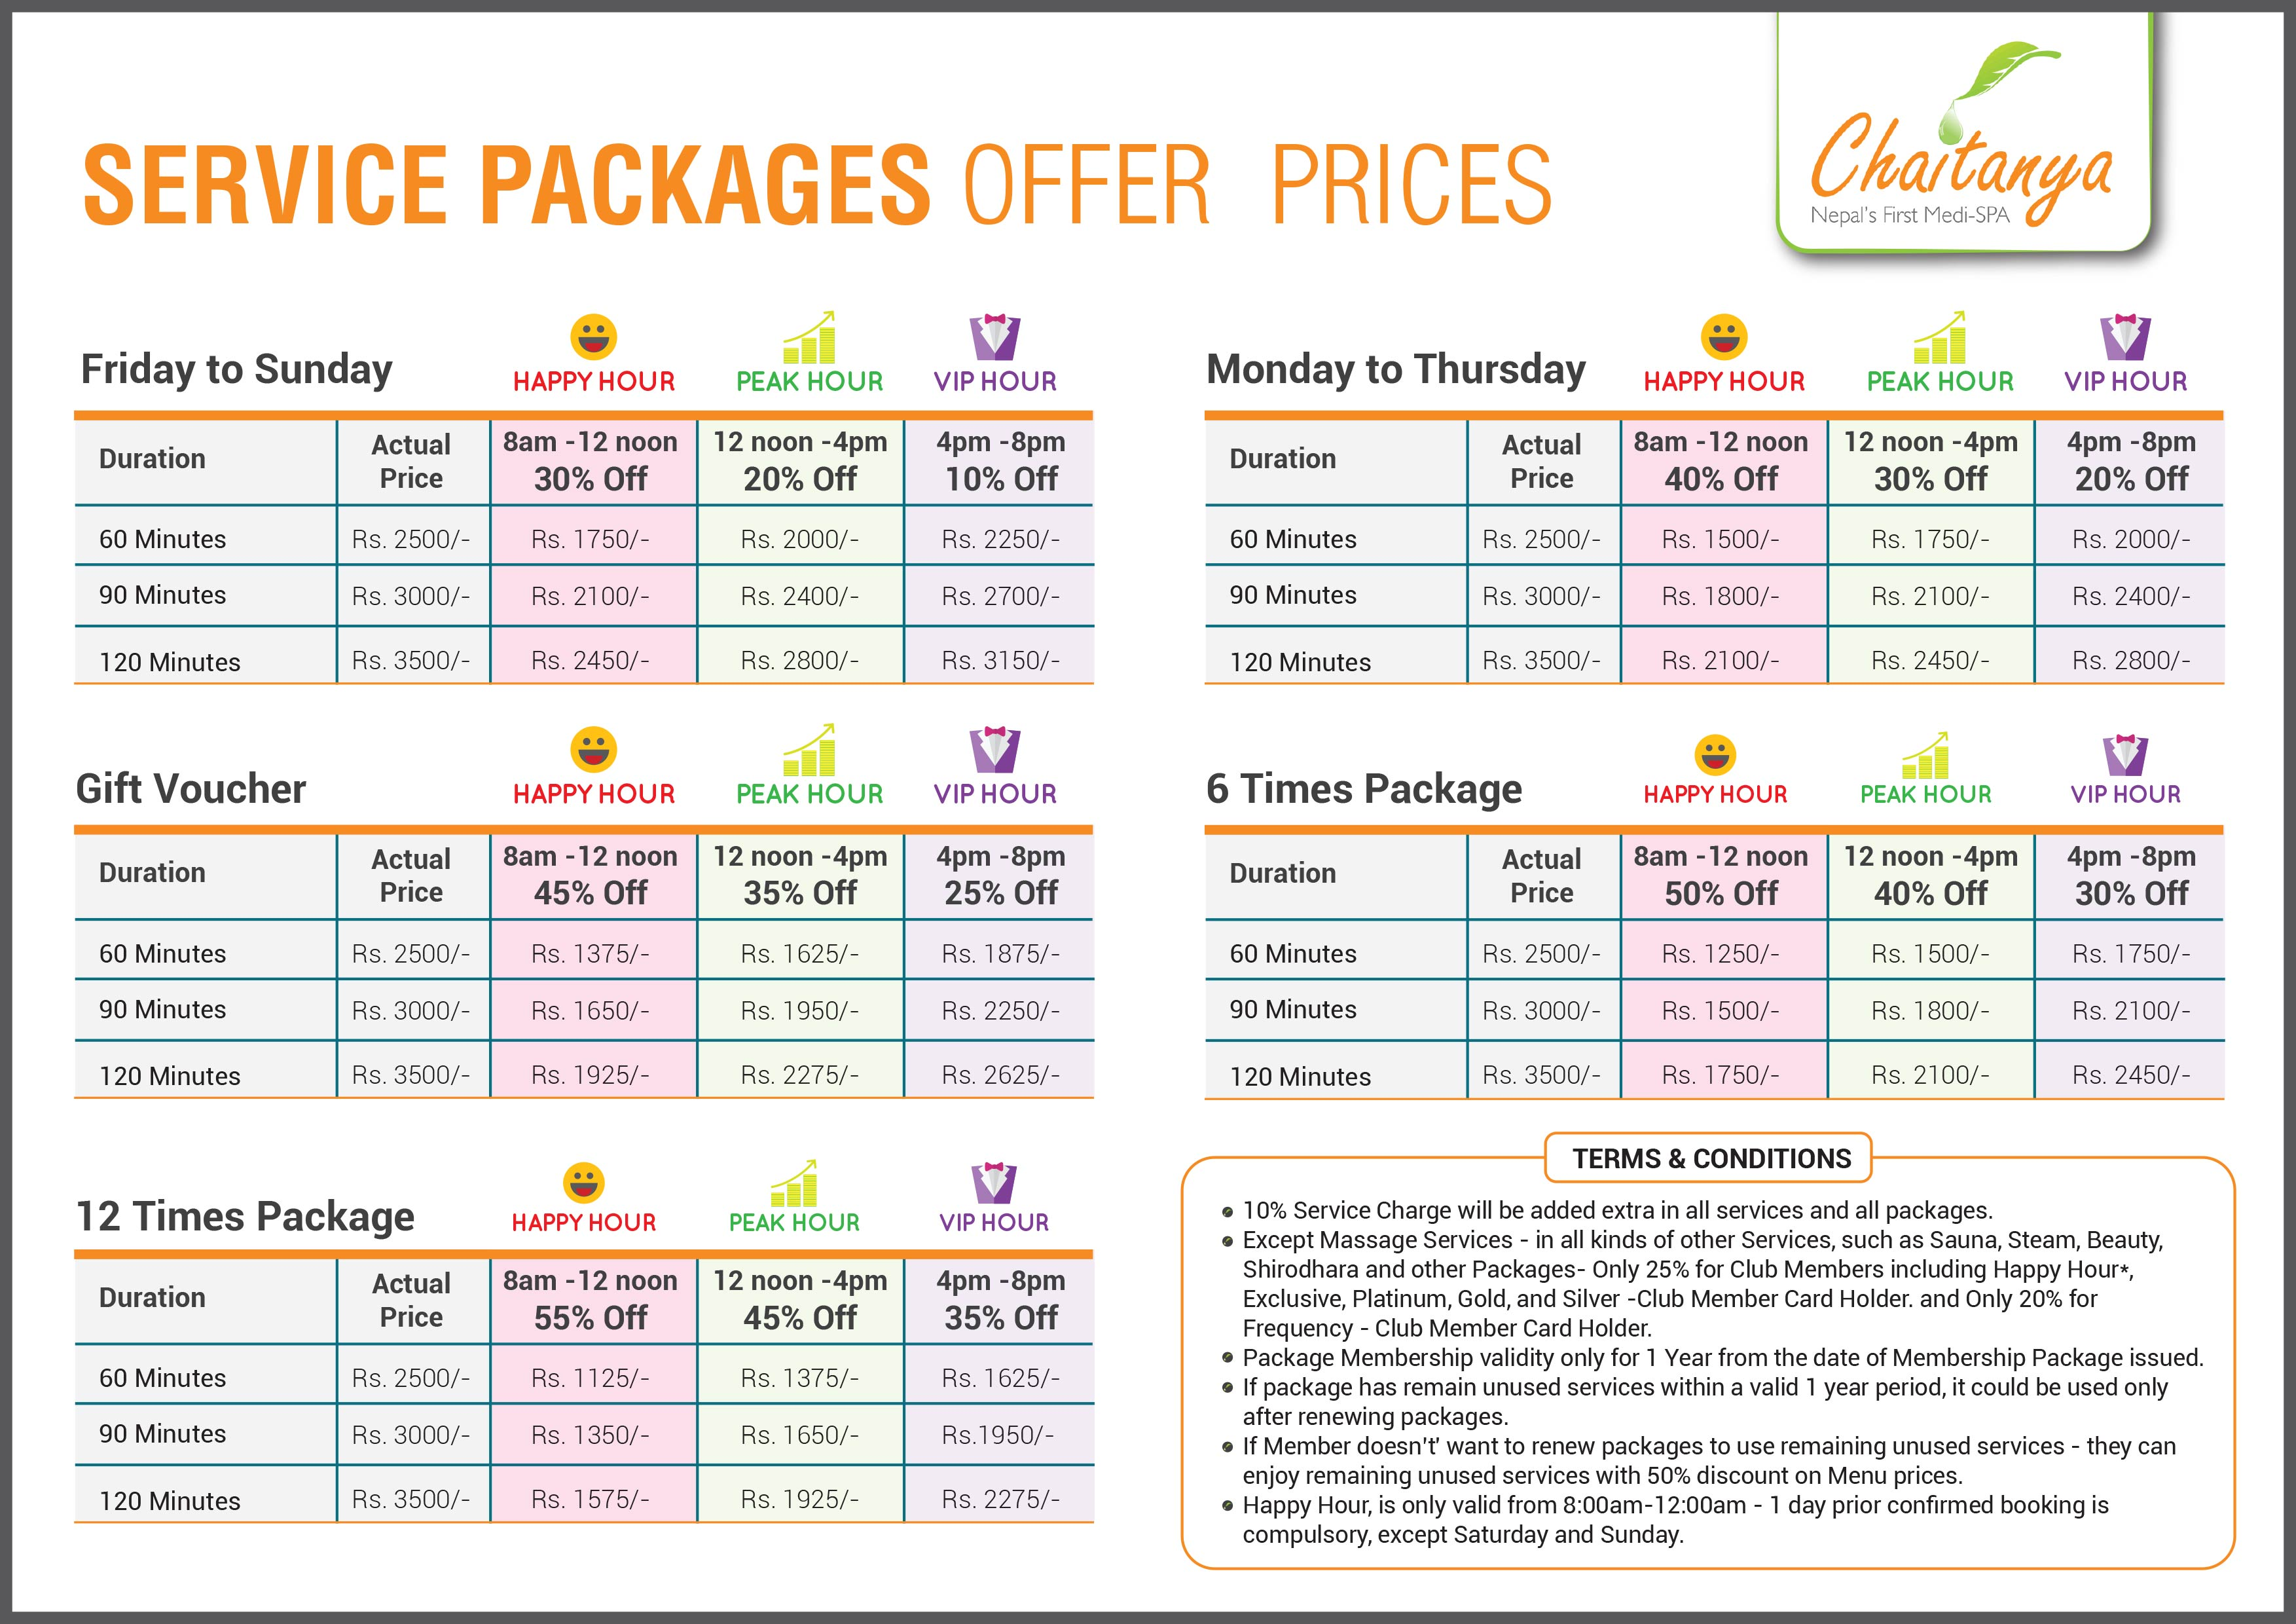 Service Package Offer Price